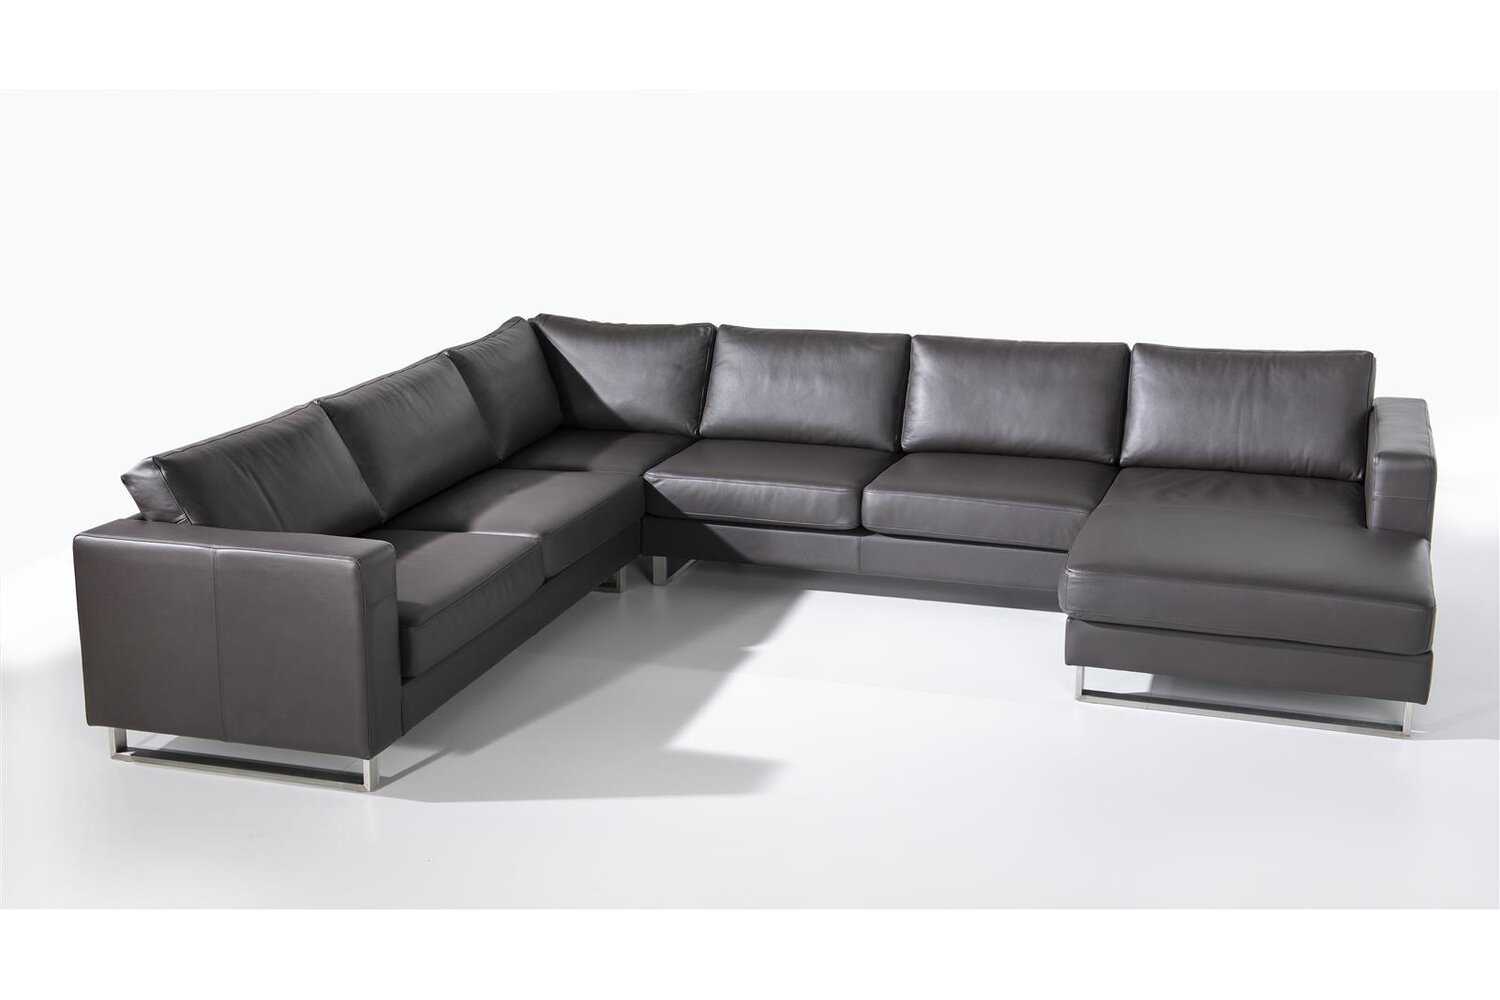 Ledercouch U Form Ledersofa Havanna U-form Gross, 5490.00 Chf